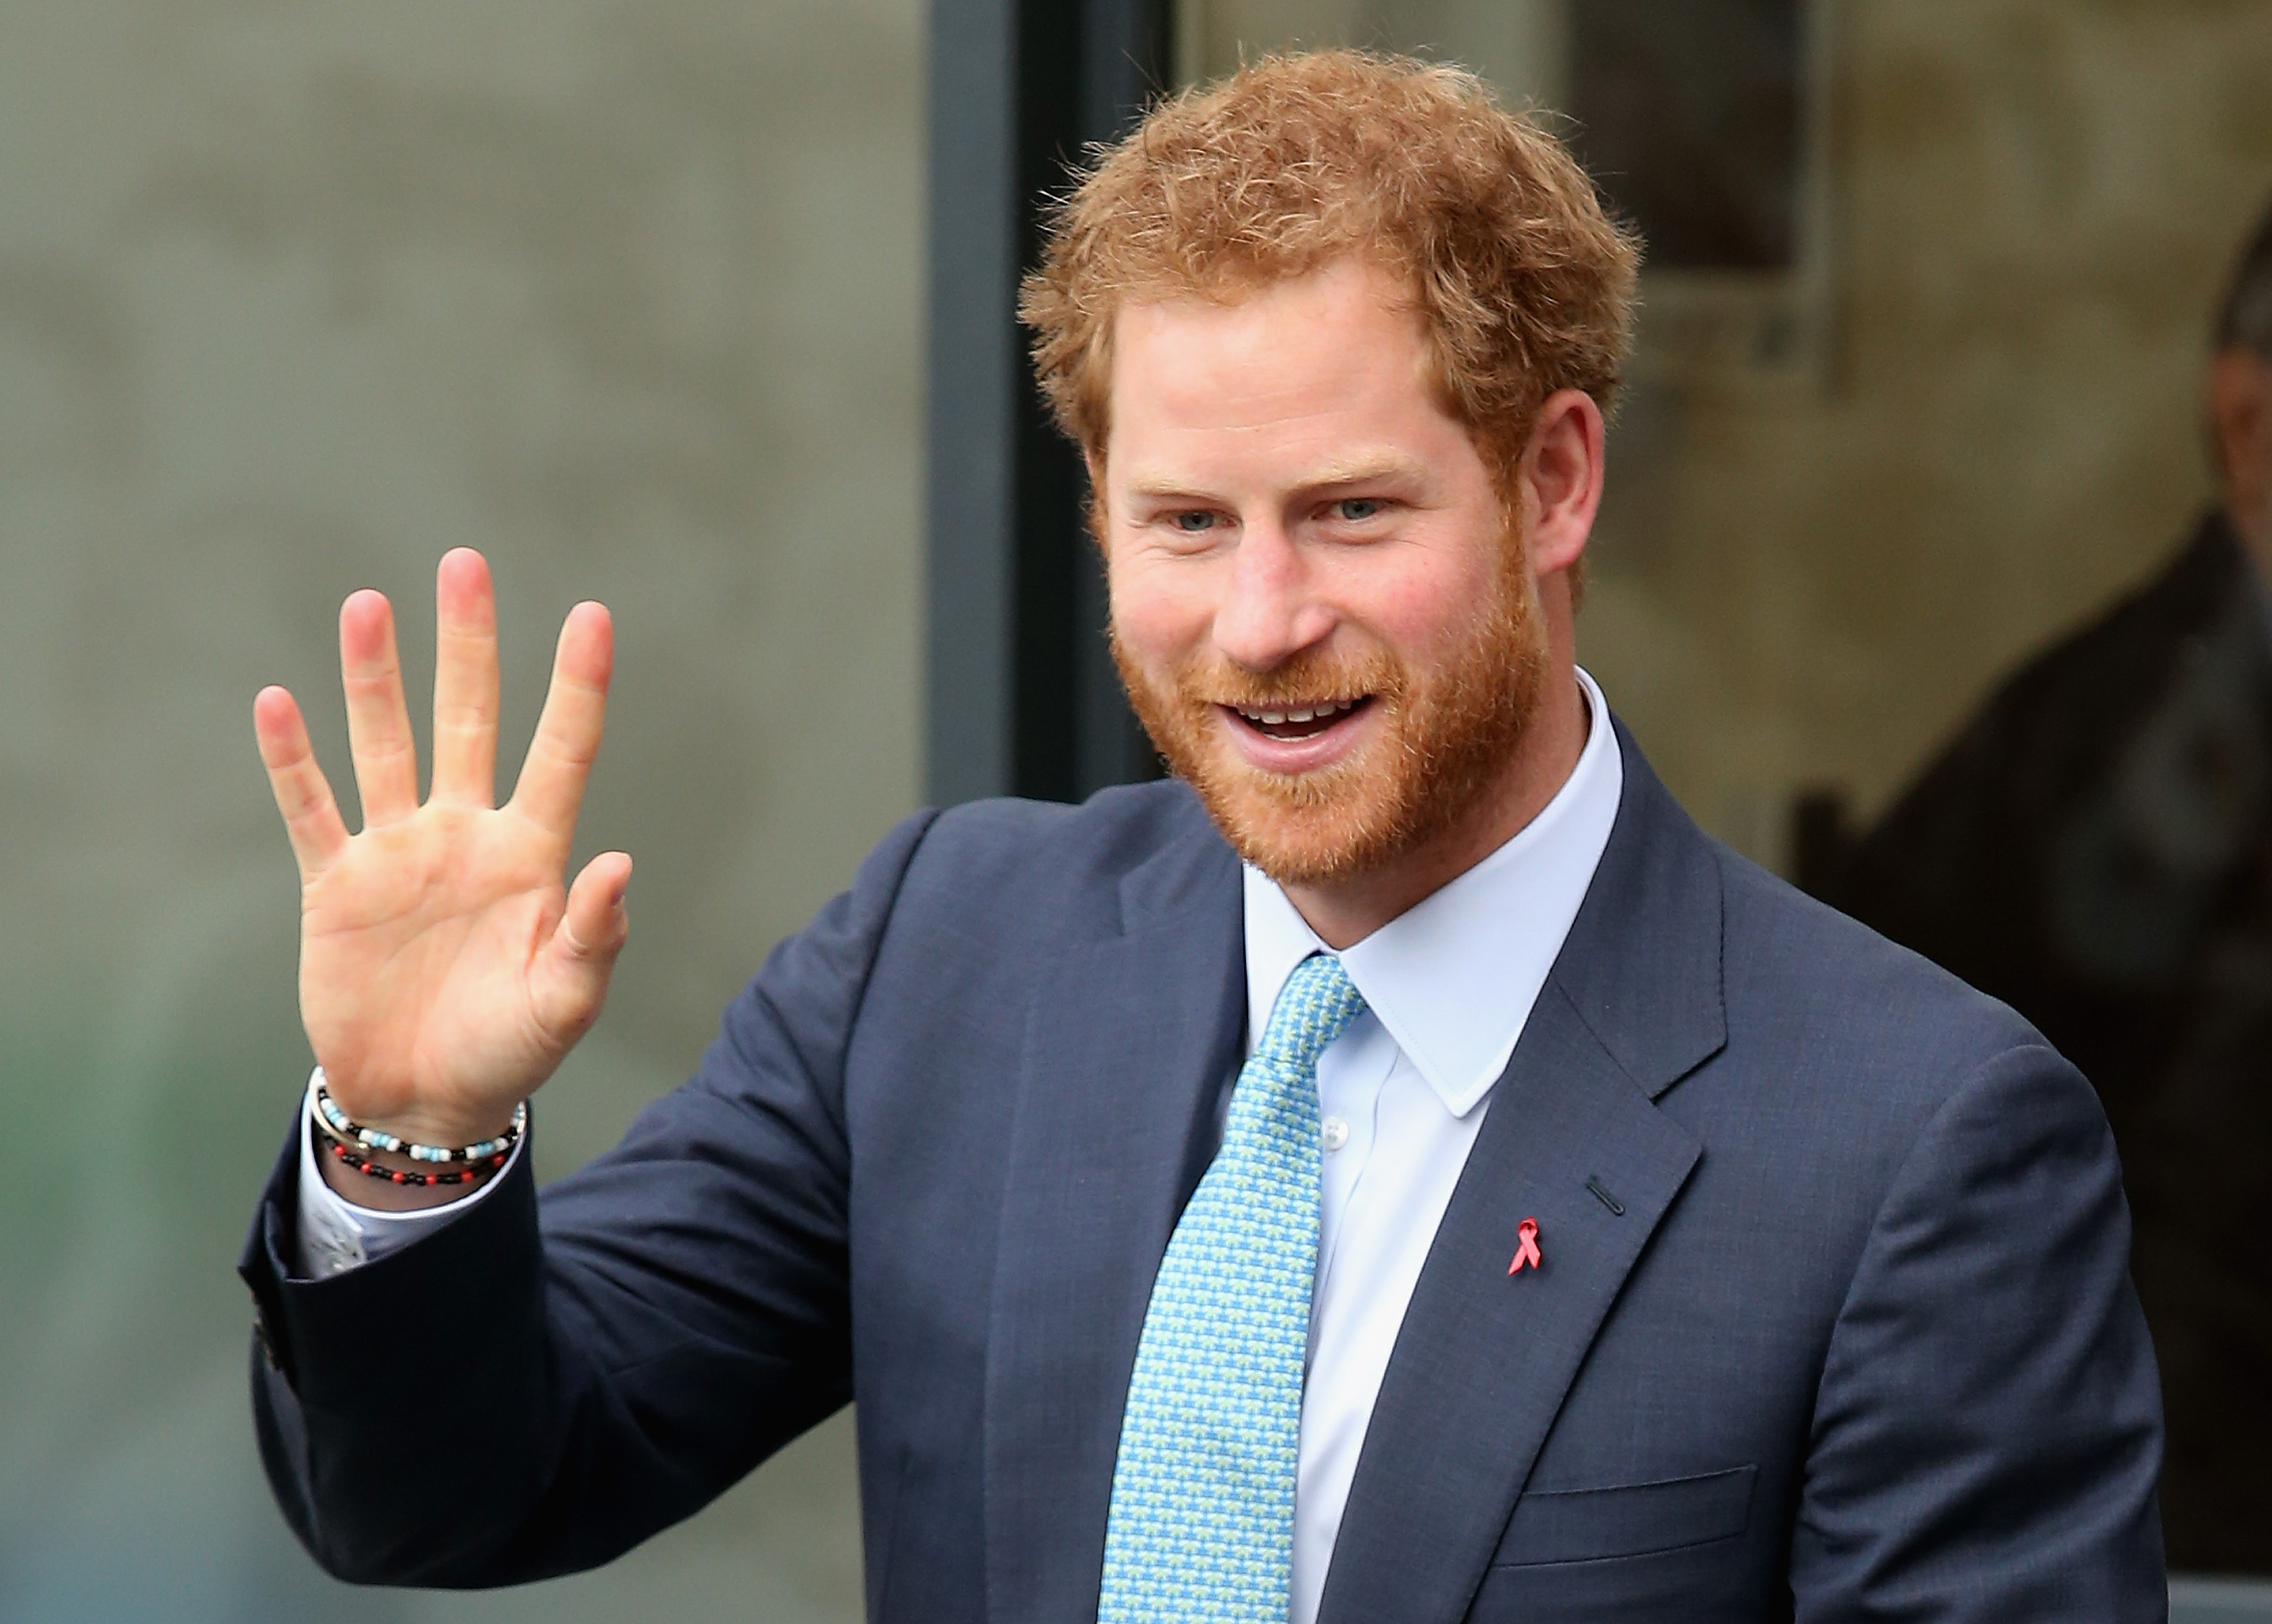 as Prince Harry makes an official visit to Mildmay, a dedicated HIV hospital, to mark the opening of the new purpose built facility at Mildmay Hospital on December 14, 2015 in London, England.